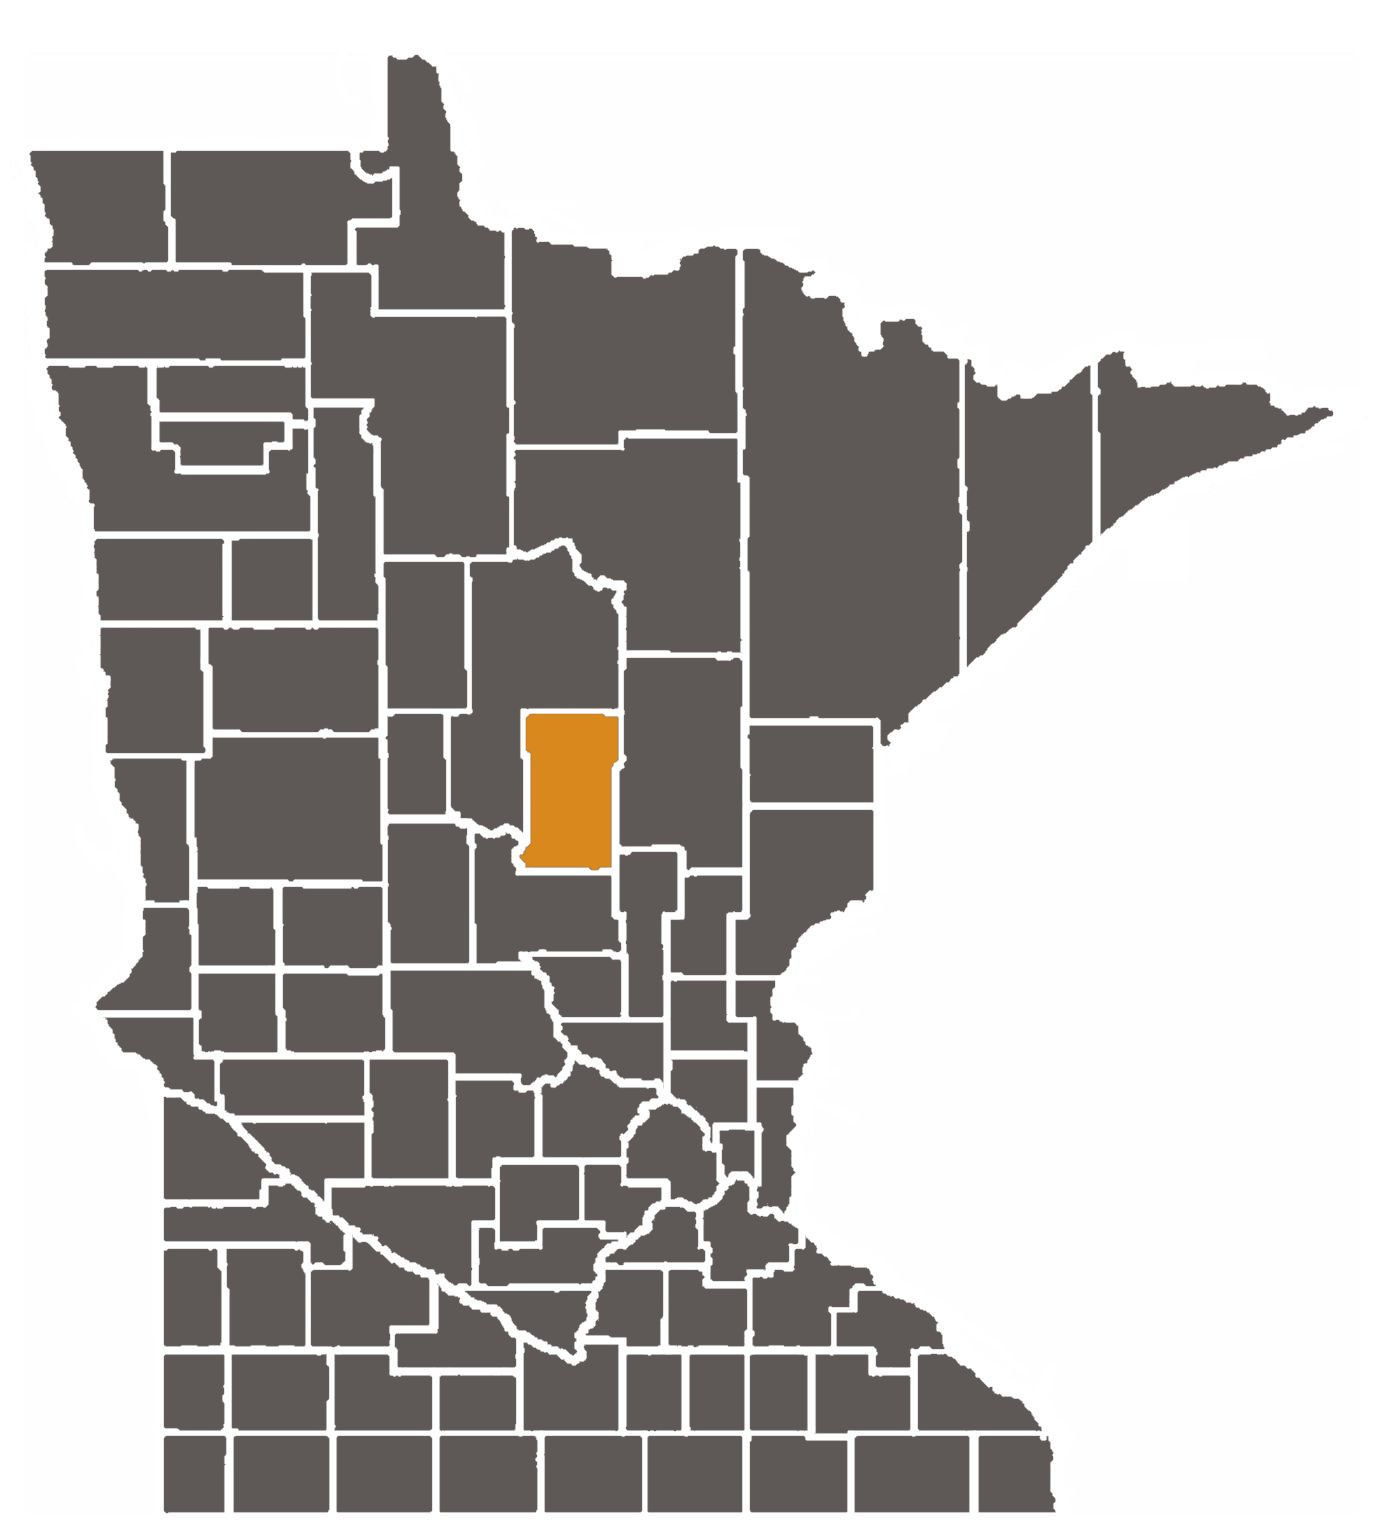 Minnesota map with Crow Wing County highlighted